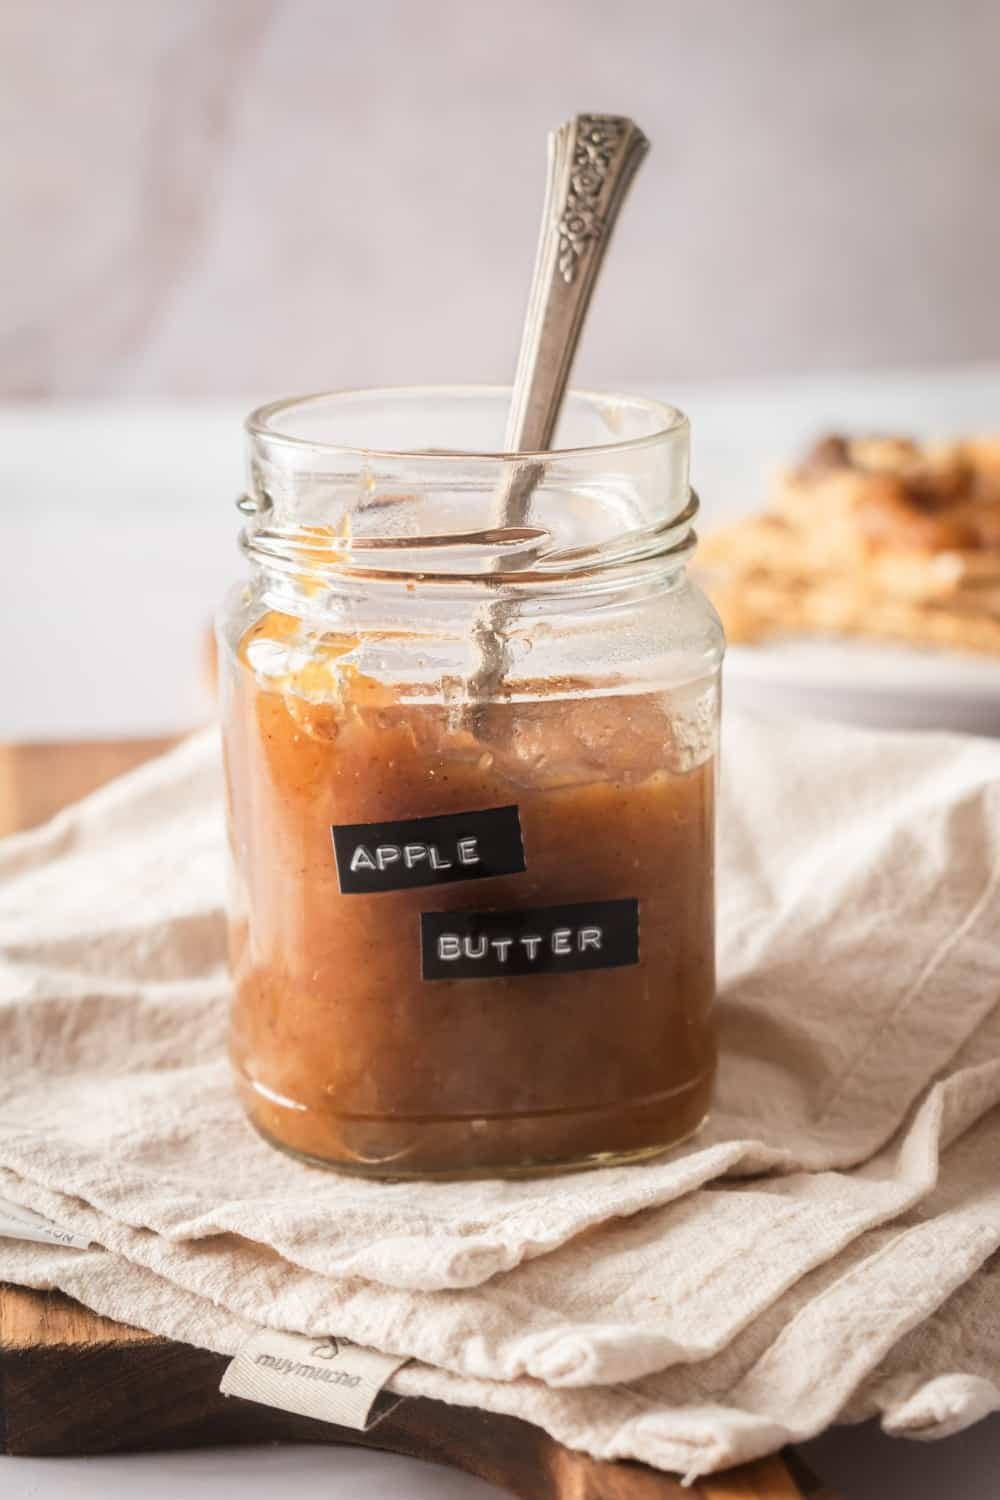 A glass jar filled with apple butter on top of the tablecloth on the wooden board. There's a spoons in the apple butter and apple butter is written on a black label on the jar.